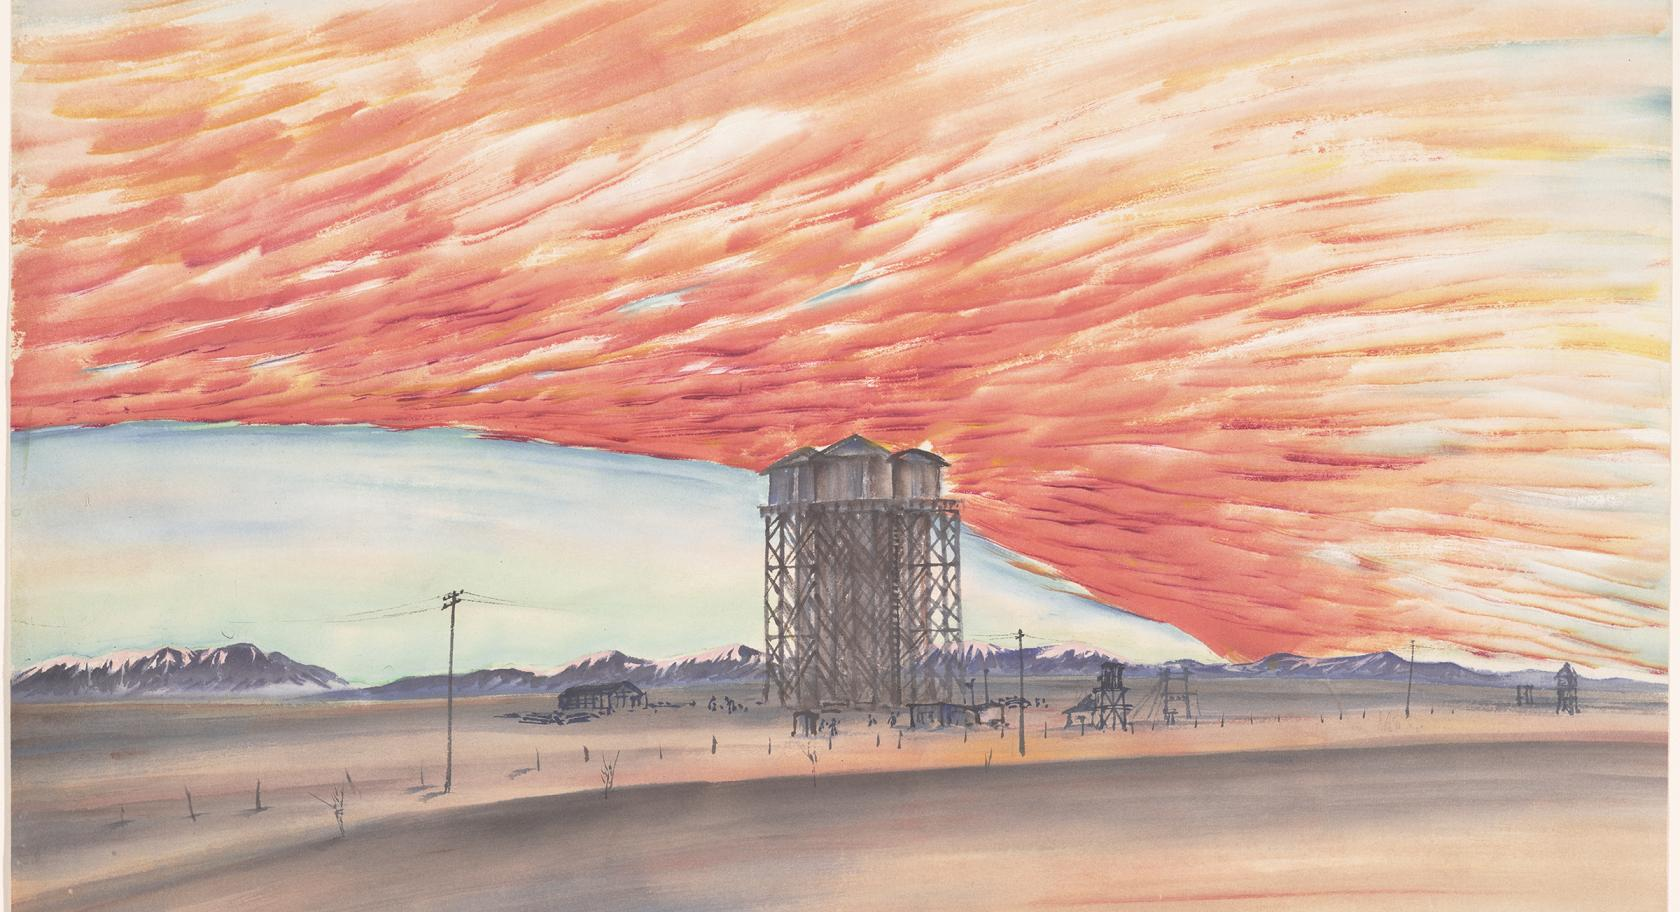 Chiura Obata (American, b. Japan, 1885-1975), Sunset, Water Tower, March 10, 1943, ink, color, and mica on paper, 15 1/4 x 20 1/2., Fine Arts Museum of San Francisco, Museum purchase, gift of the Graphic Arts Council, 2001.28.1